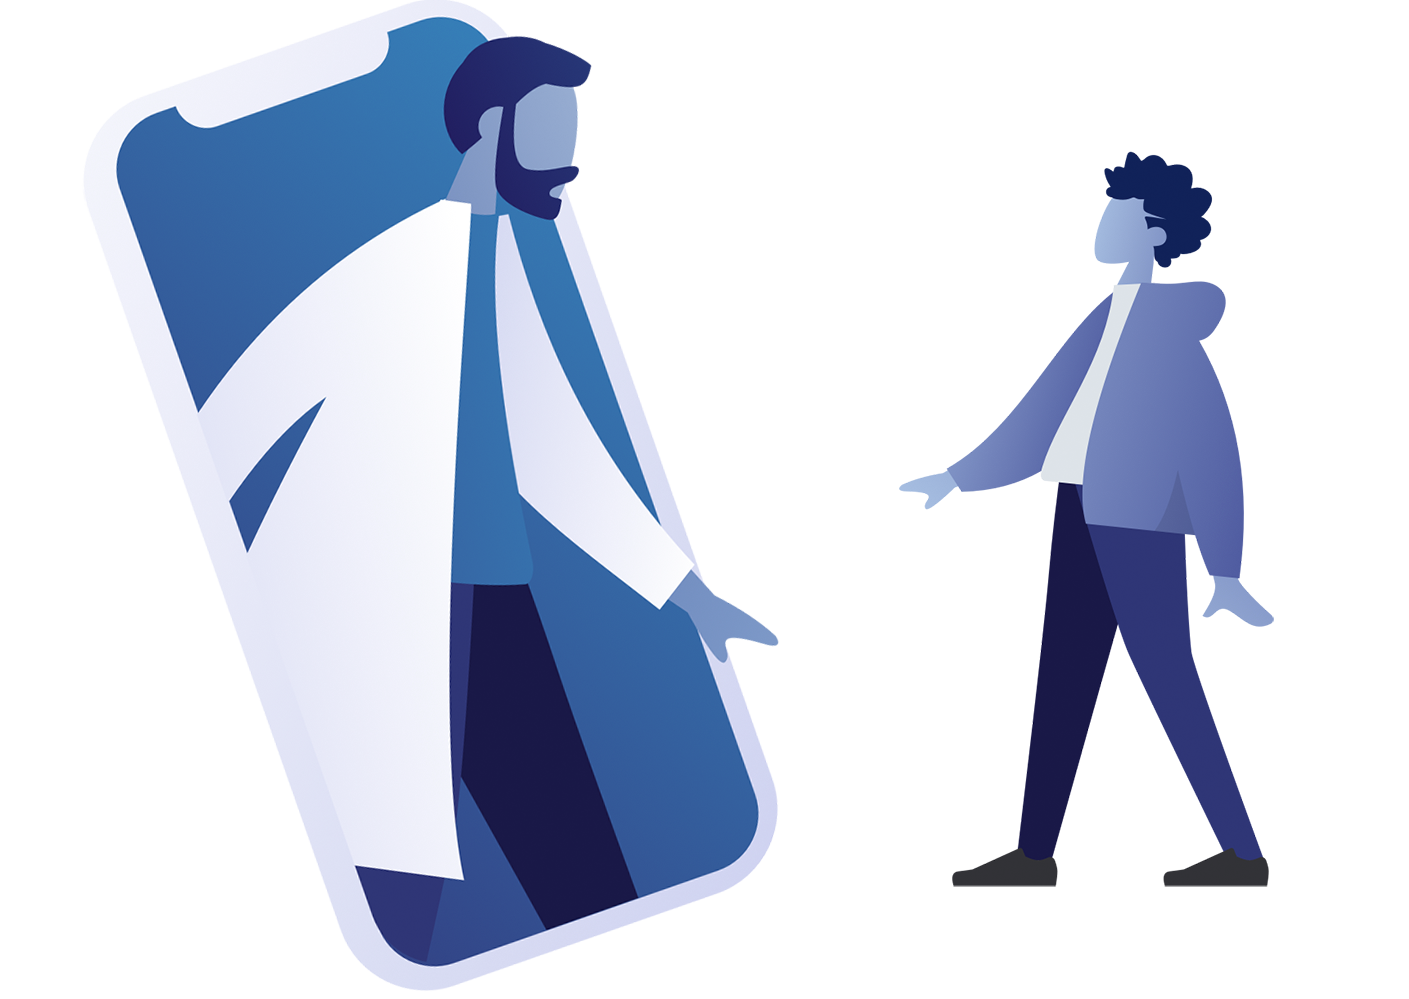 Patient Experience - Legwork's automated tools will help you understand your patients' preferences before they even arrive. Your patients will look forward to their appointment when they know their visit will be tailored to their needs.